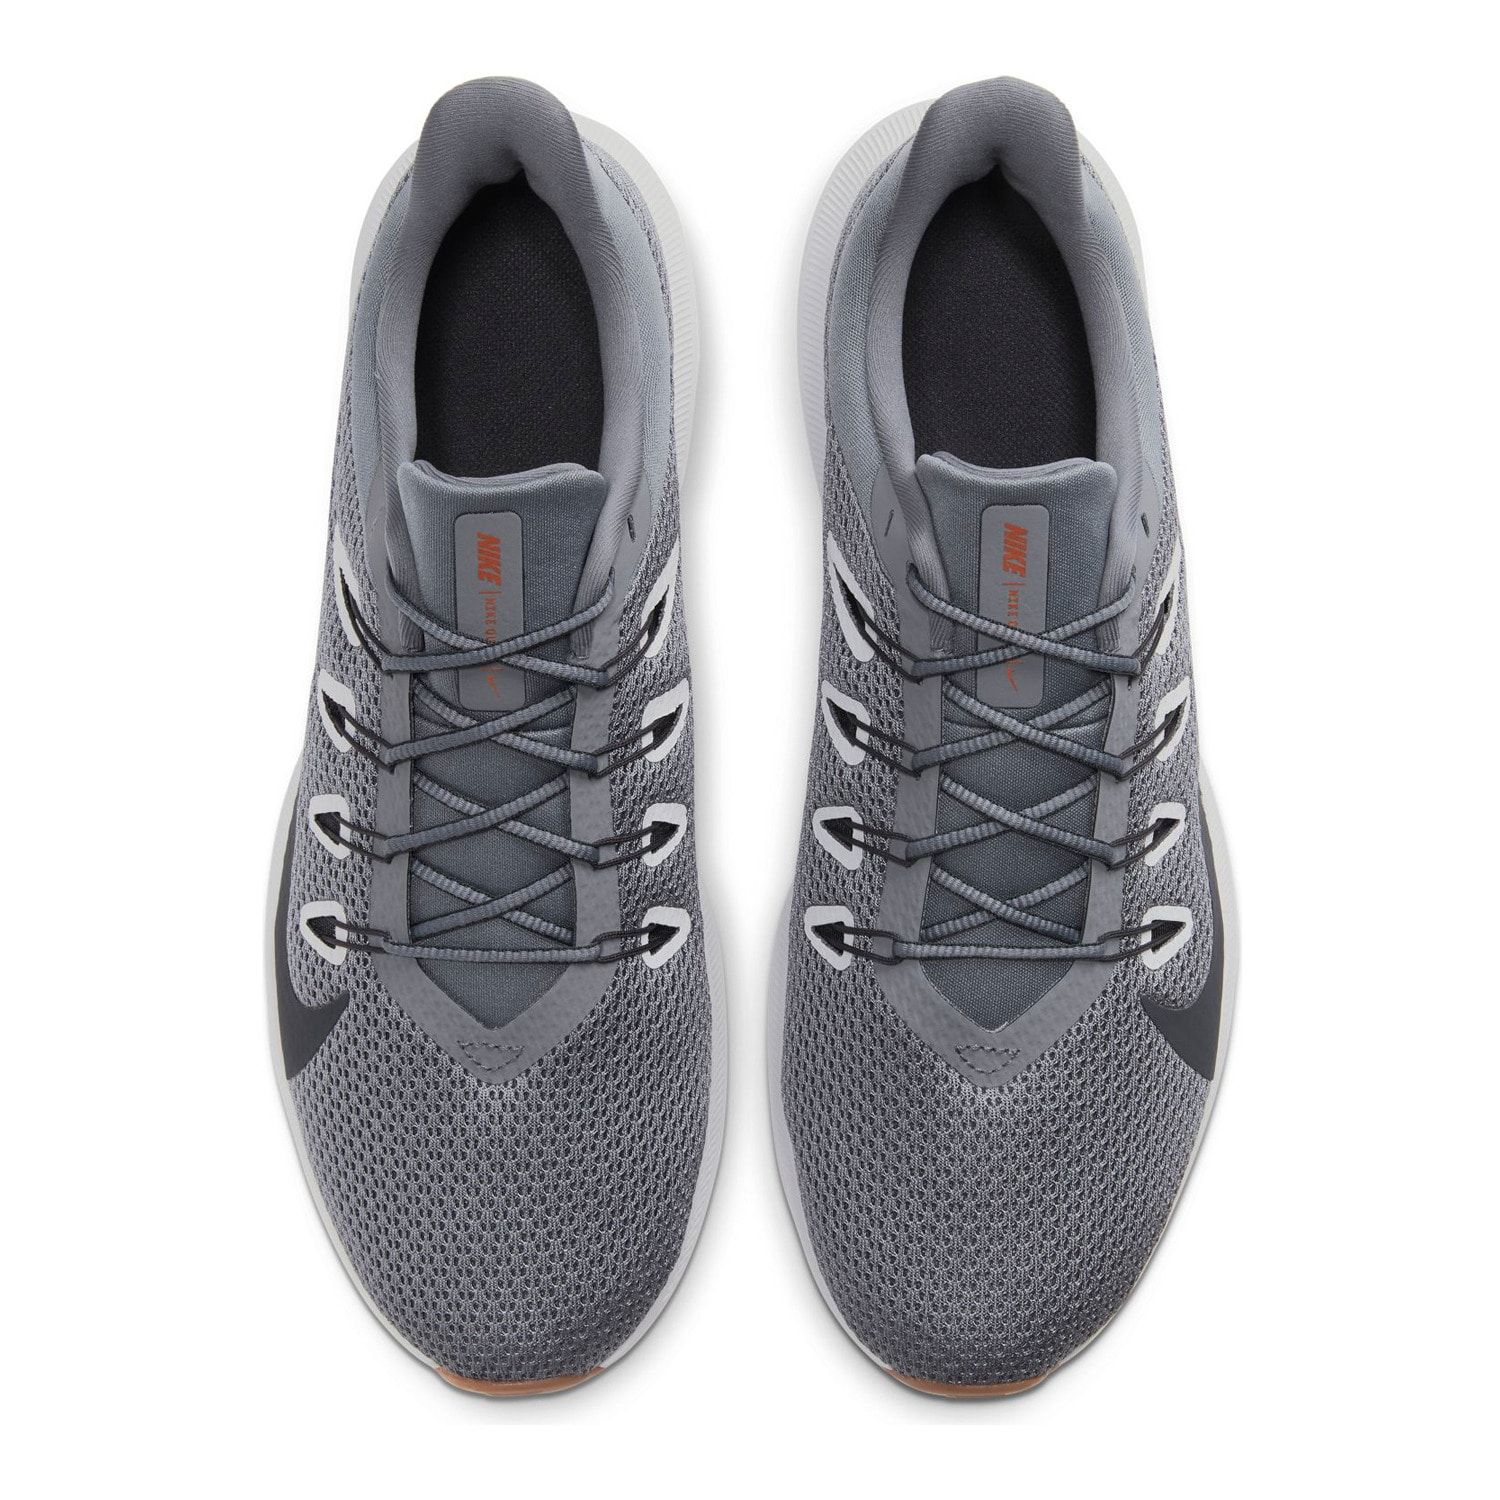 Running shoes for men, Nike shoes